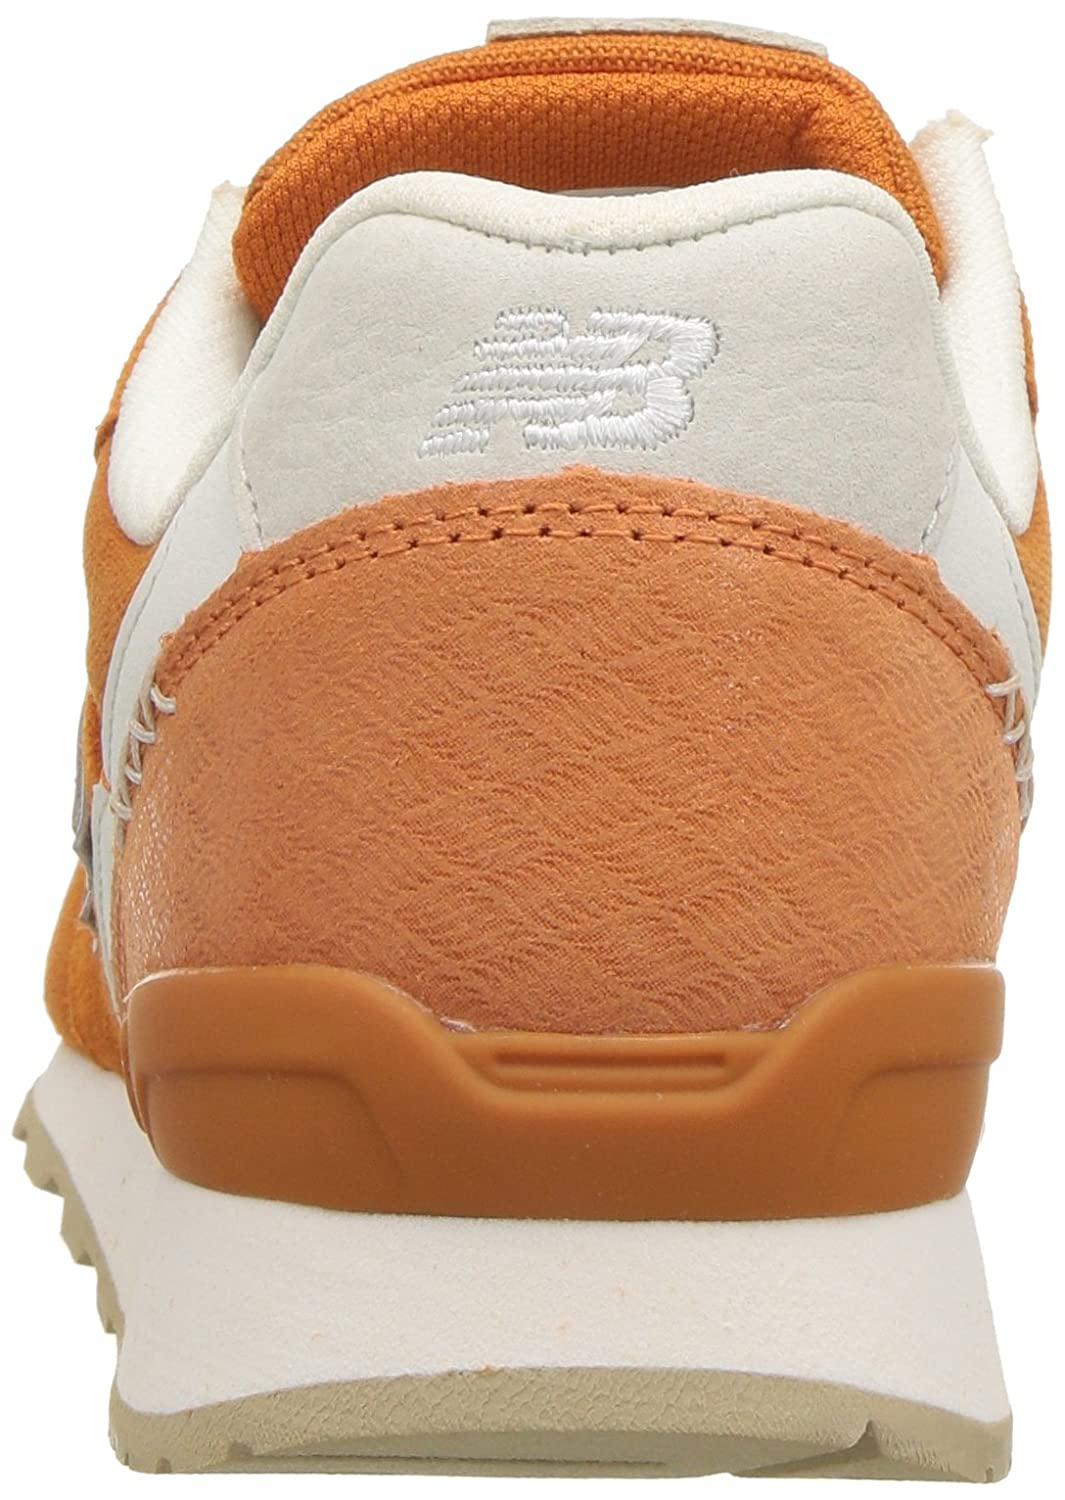 New Balance B0751TKFCH Women's 696 v1 Sneaker B0751TKFCH Balance 10 B(M) US|Vintage Orange/Sea Salt 257cbc